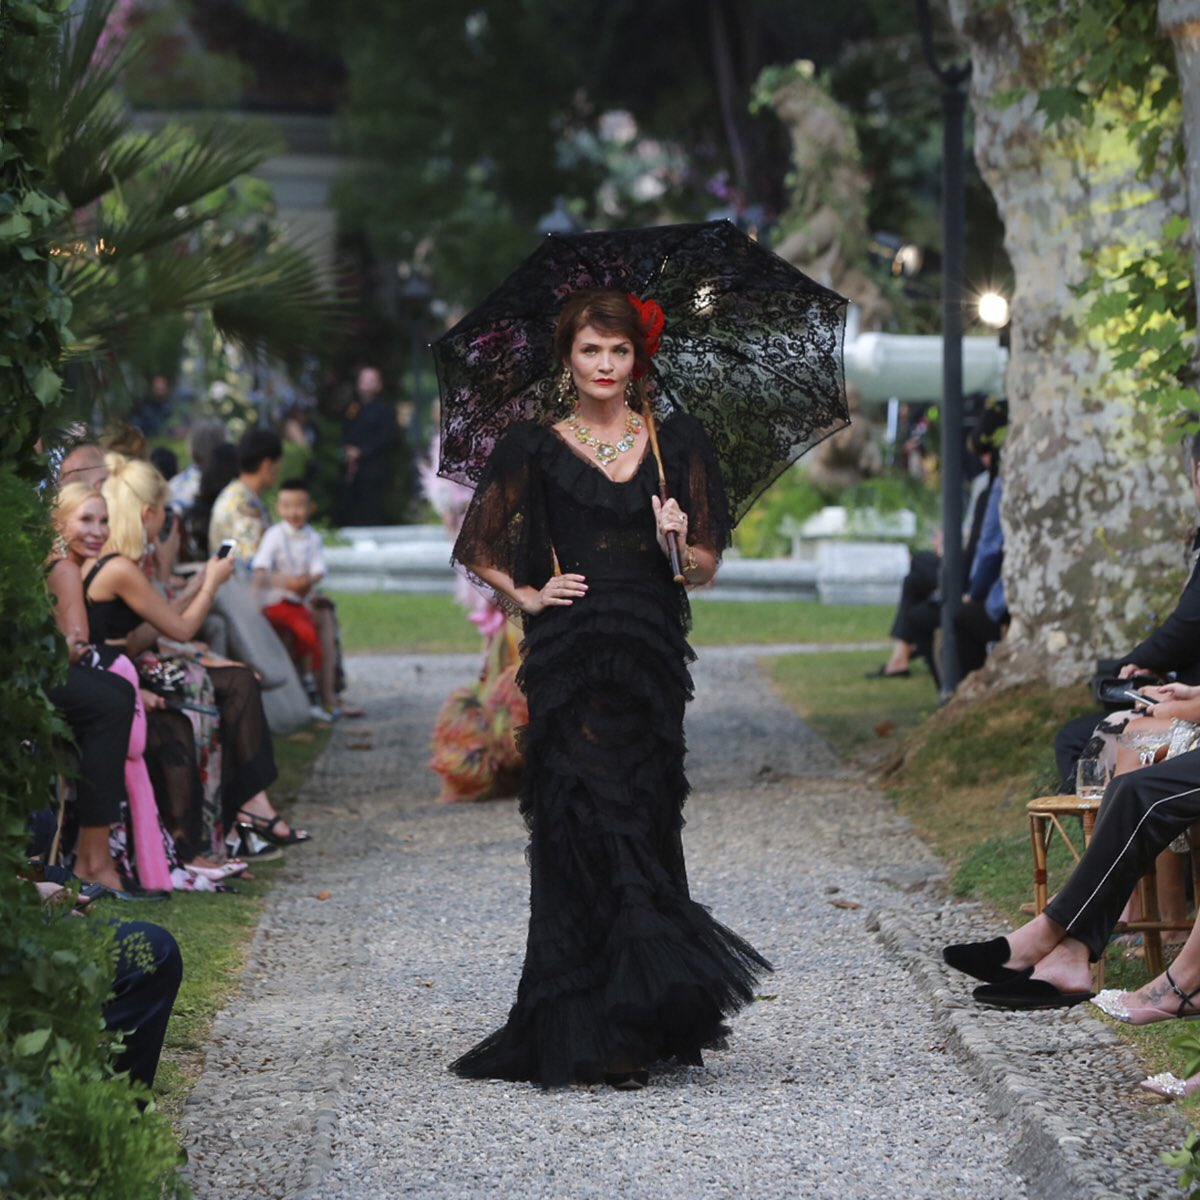 Helena Christensen walks for the Dolce and Gabbana Alta Moda Fashion Show at Lake Como, July 2018 - via @dolcegabbana - dolce & gabbana haute couture - couture black parasol